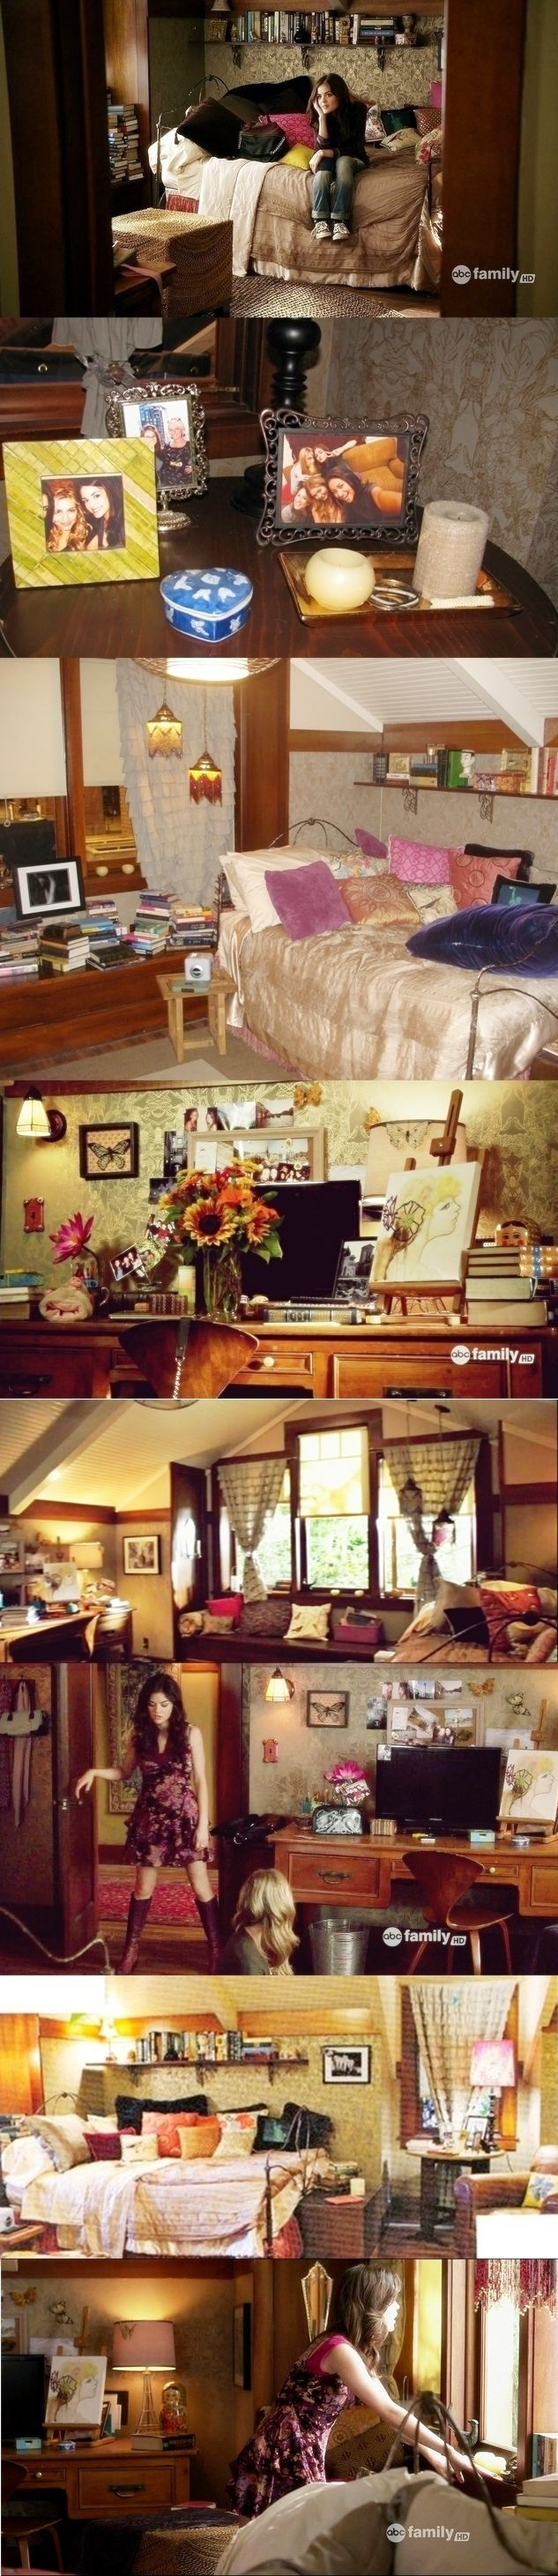 Aria's Room in Pretty Little Liars, I love how layered and and interesting this room is. So full of curious items.